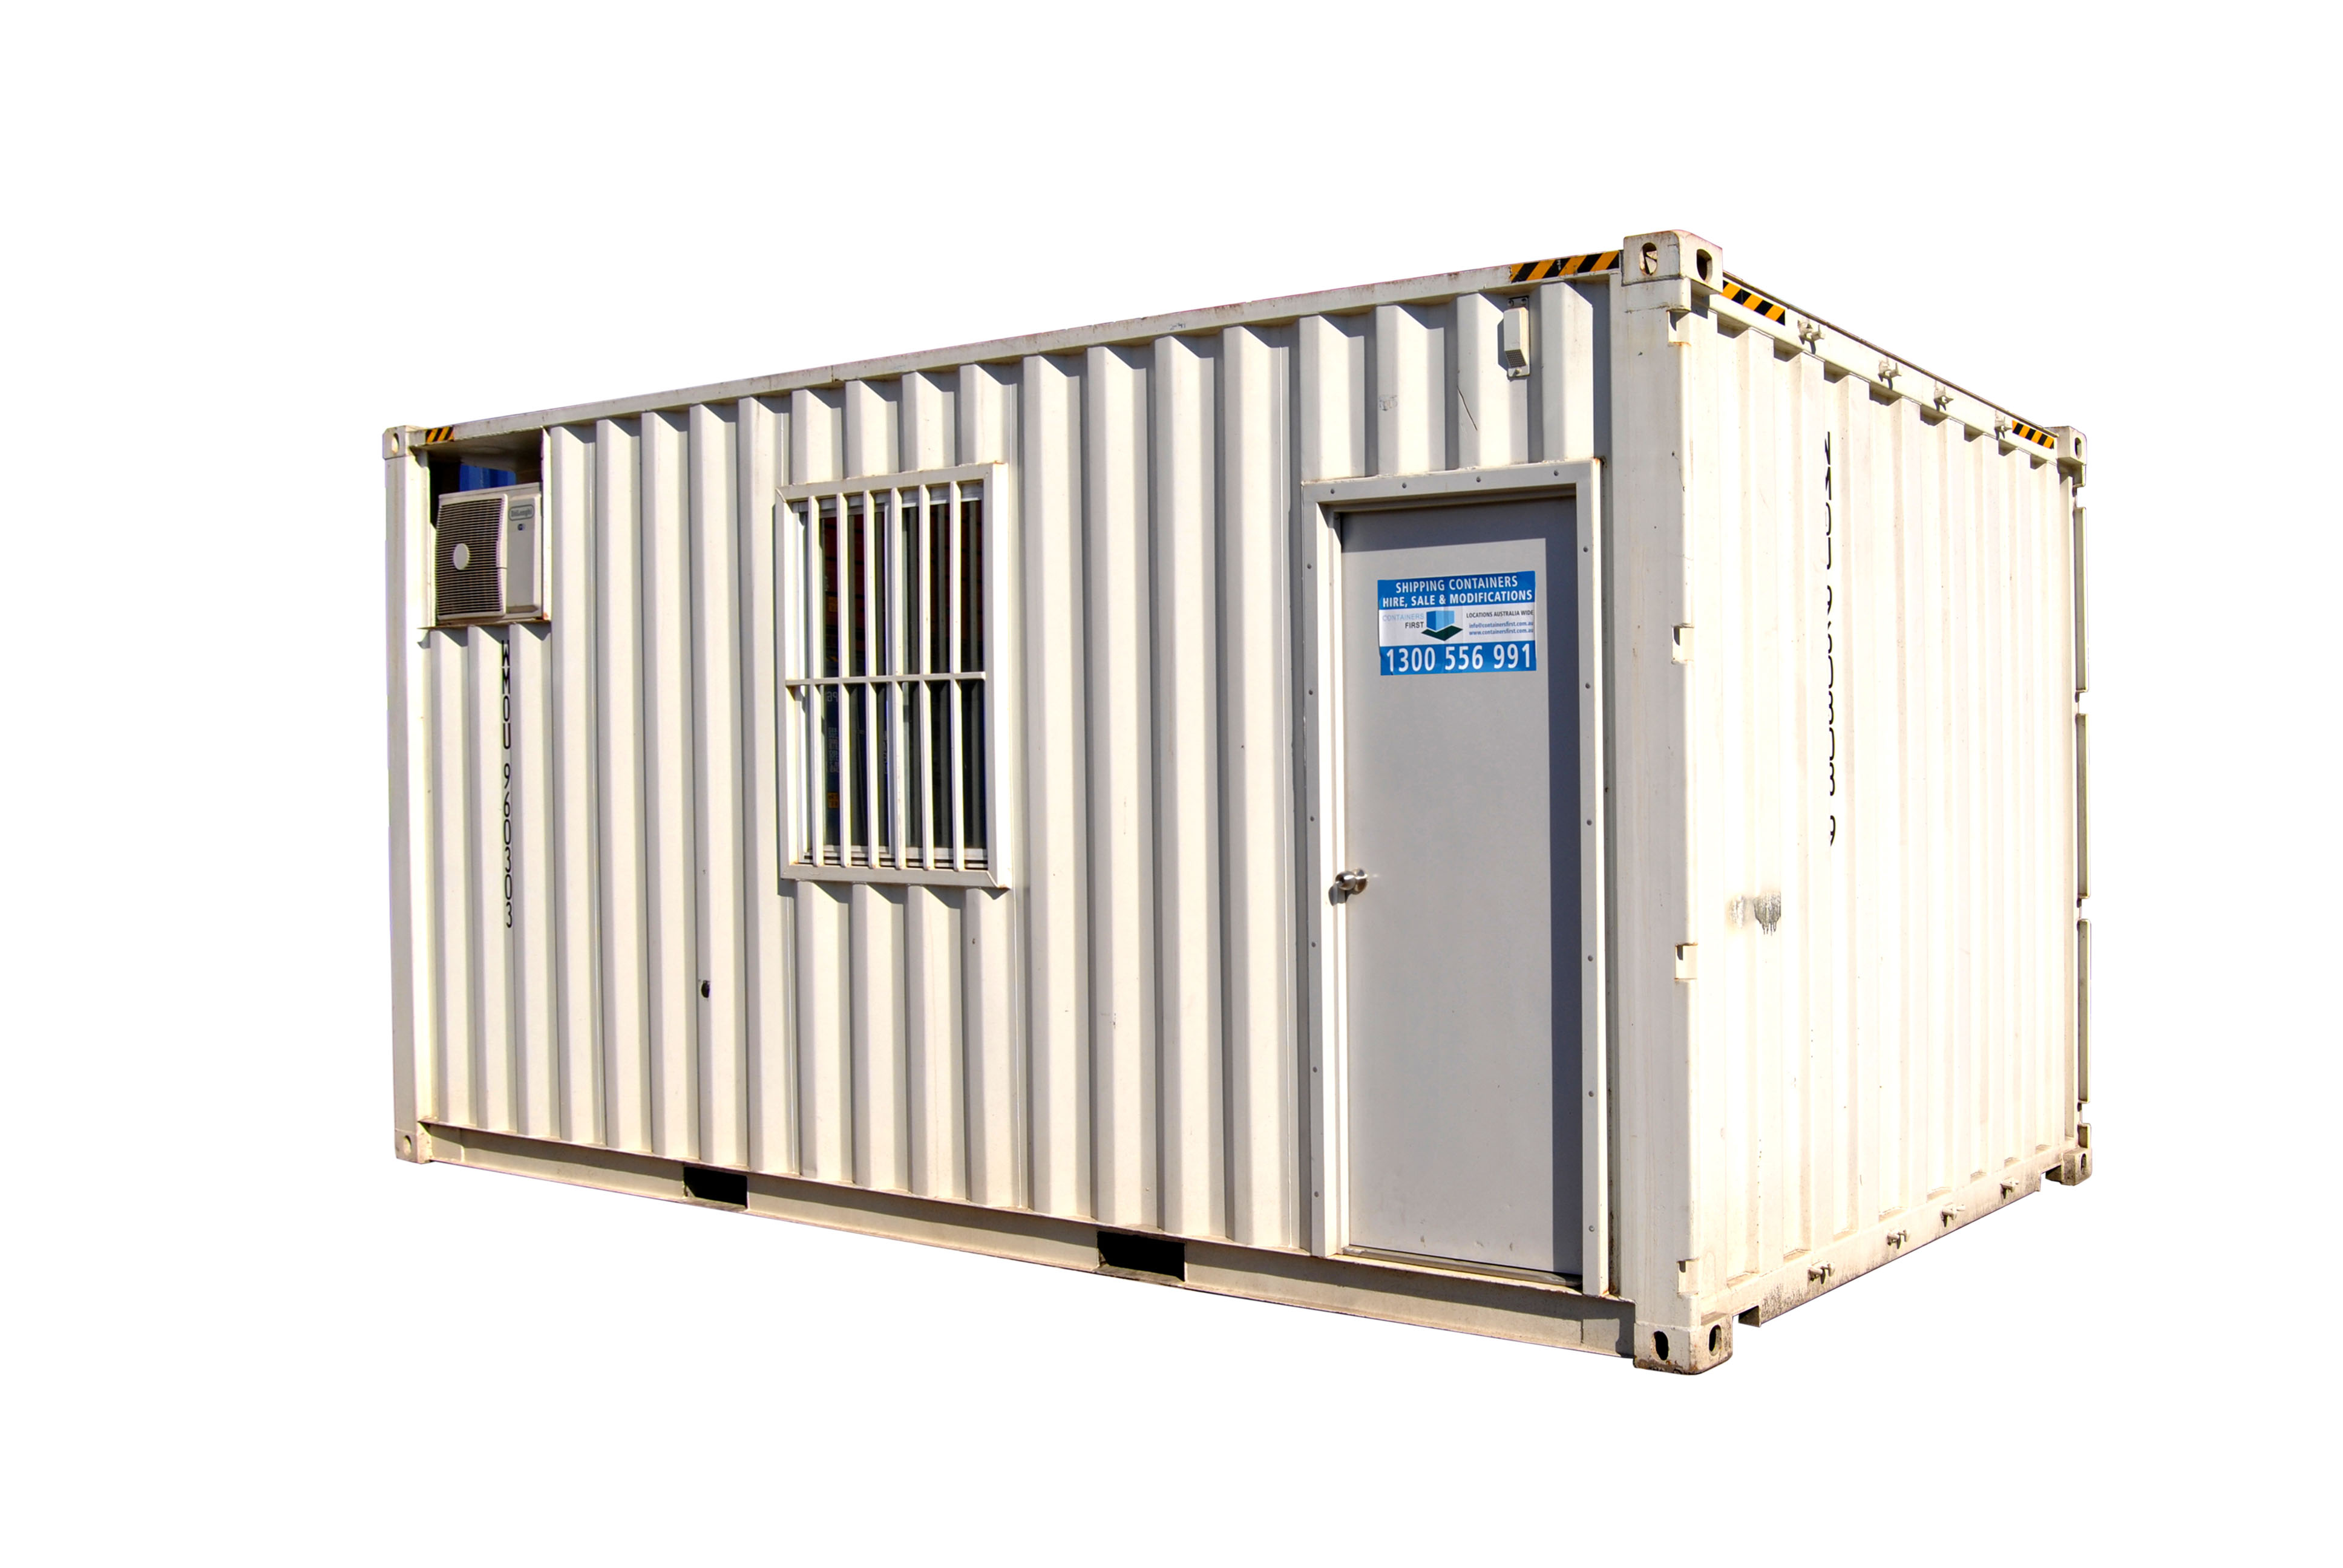 Container Lunch Room Shipping Containers For Sale